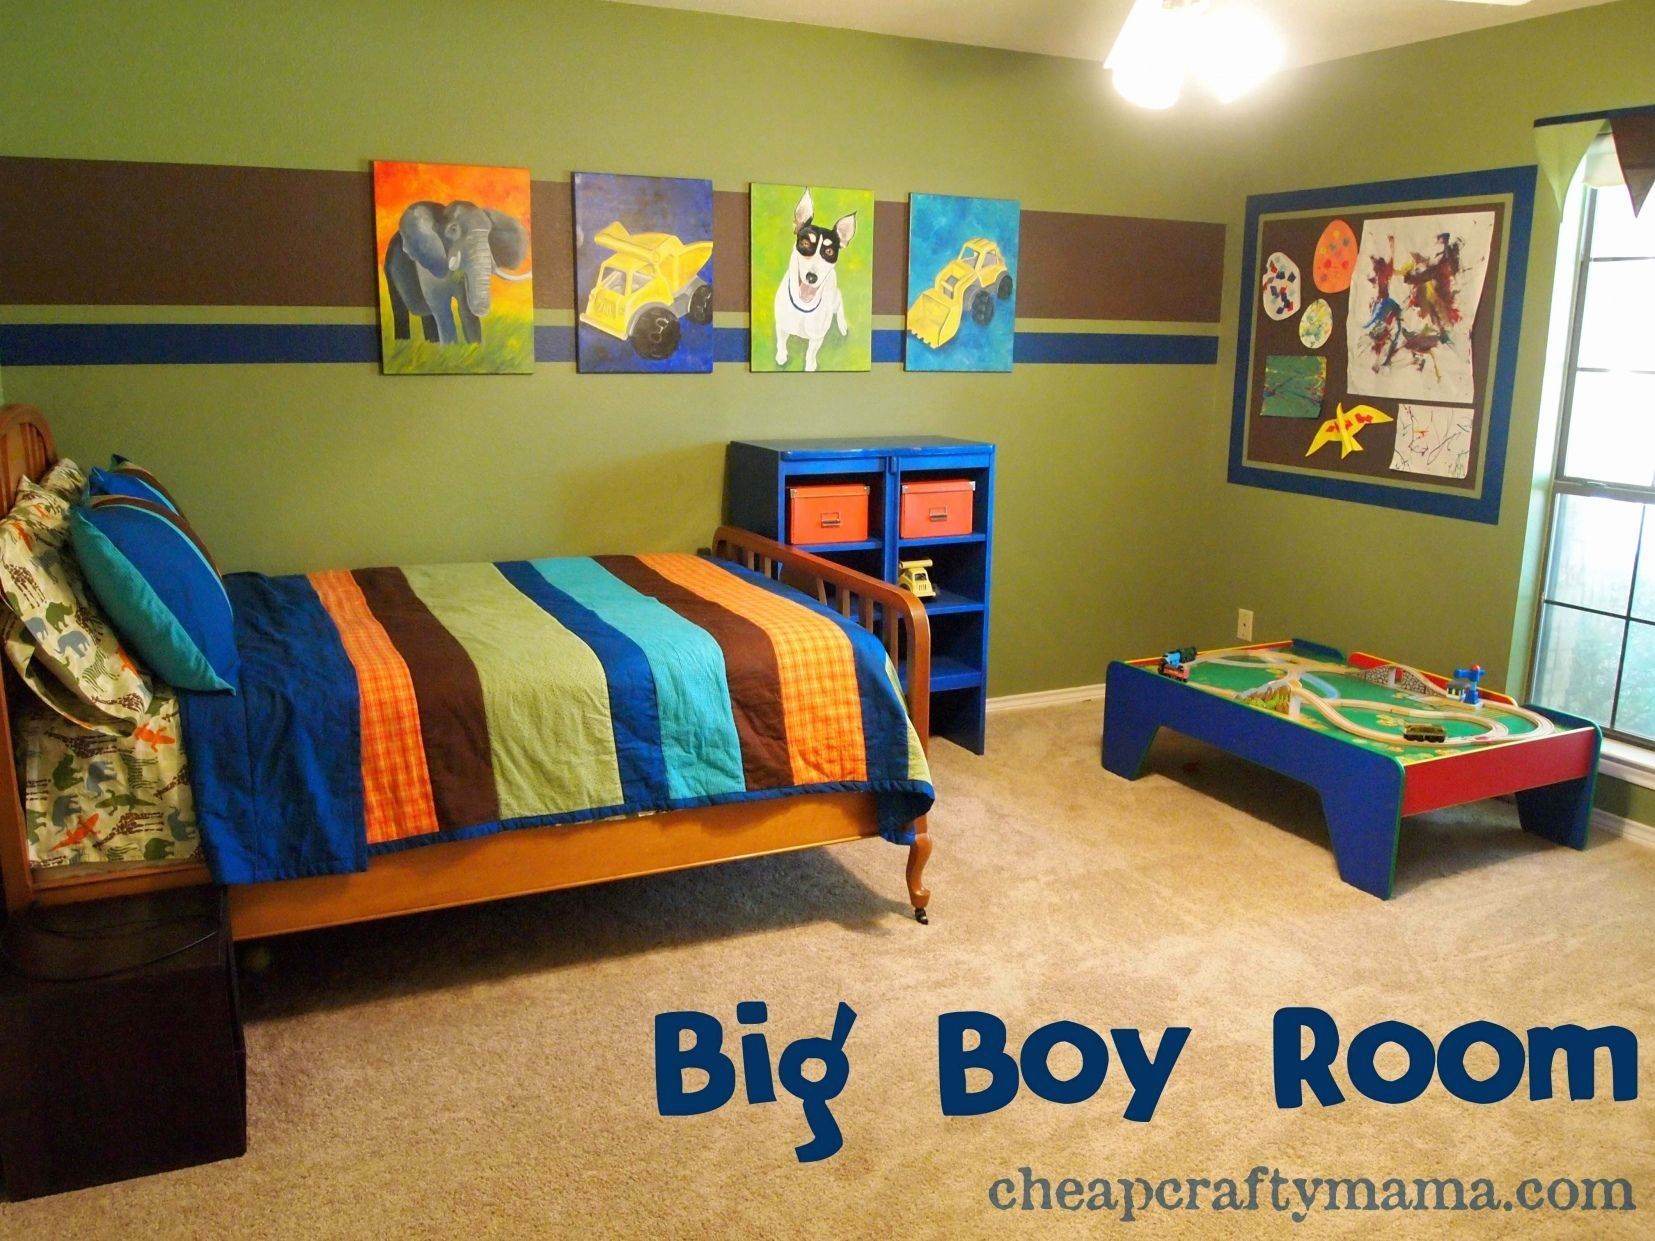 50 8 Year Old Boy Room Ideas Wall Decor Ideas For Bedroom Check More At David 50 8 Yea Toddler Boy Room Decor Boys Bedroom Decor Kids Bedroom Designs